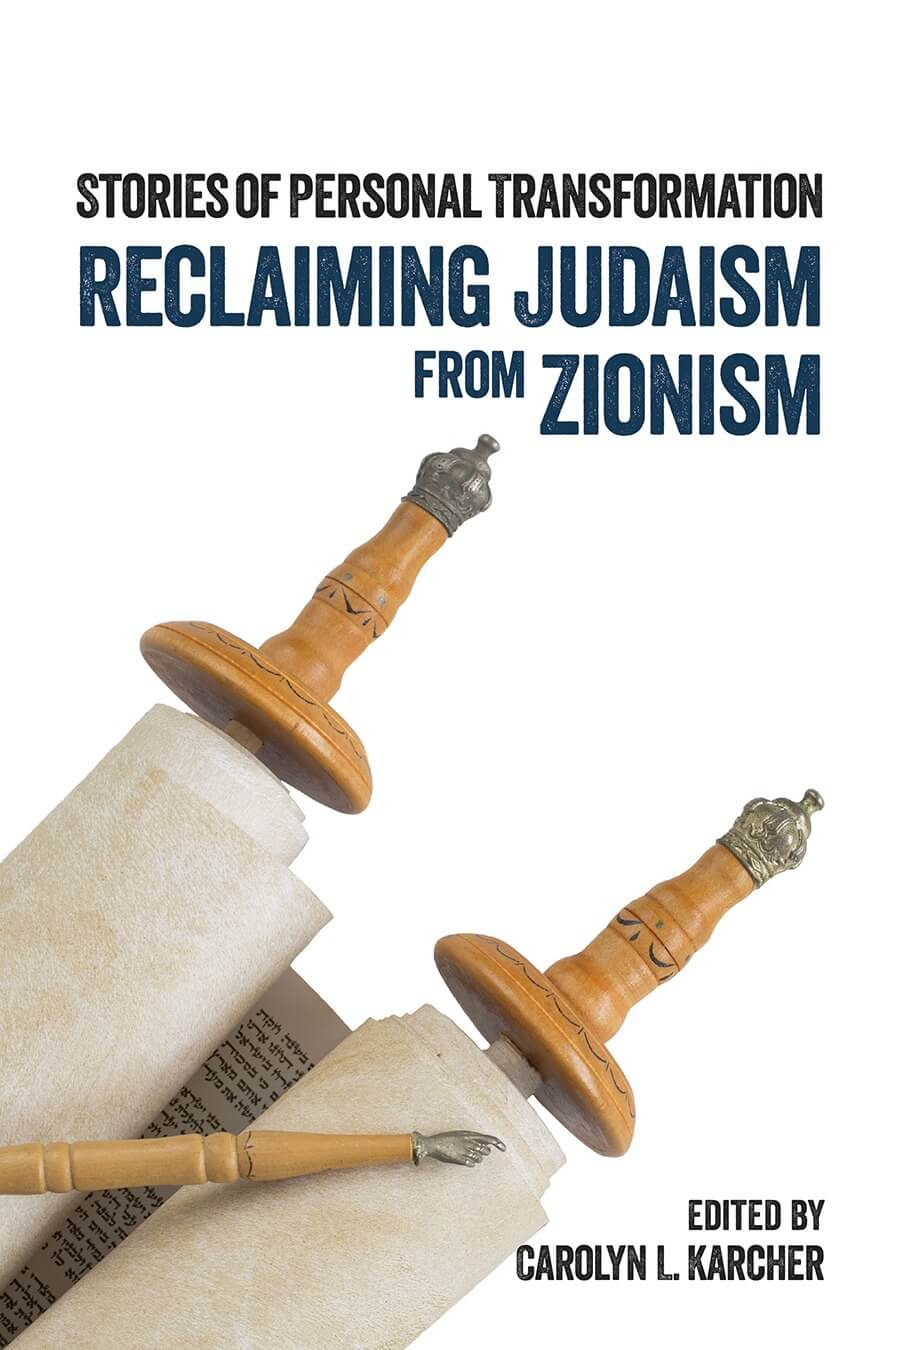 The cover of Reclaiming Judaism from Zionism: Stories of Personal Transformation